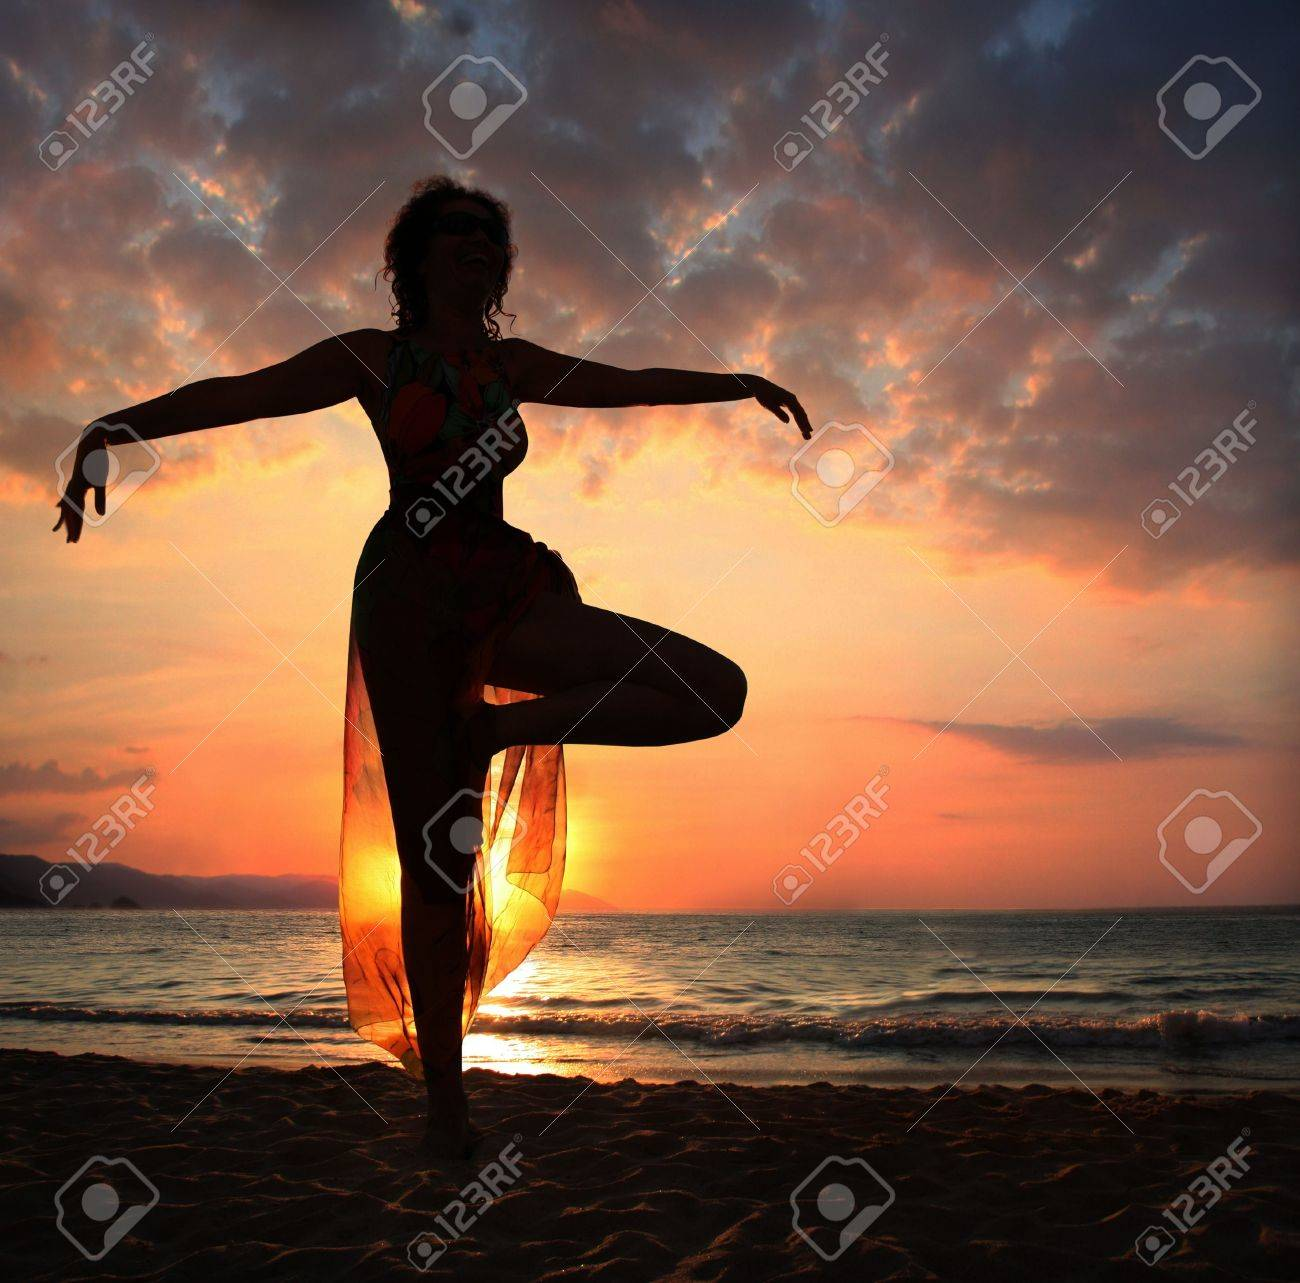 Woman doing yoga exercise on the beach at sunset, silhouette Stock Photo - 3974442